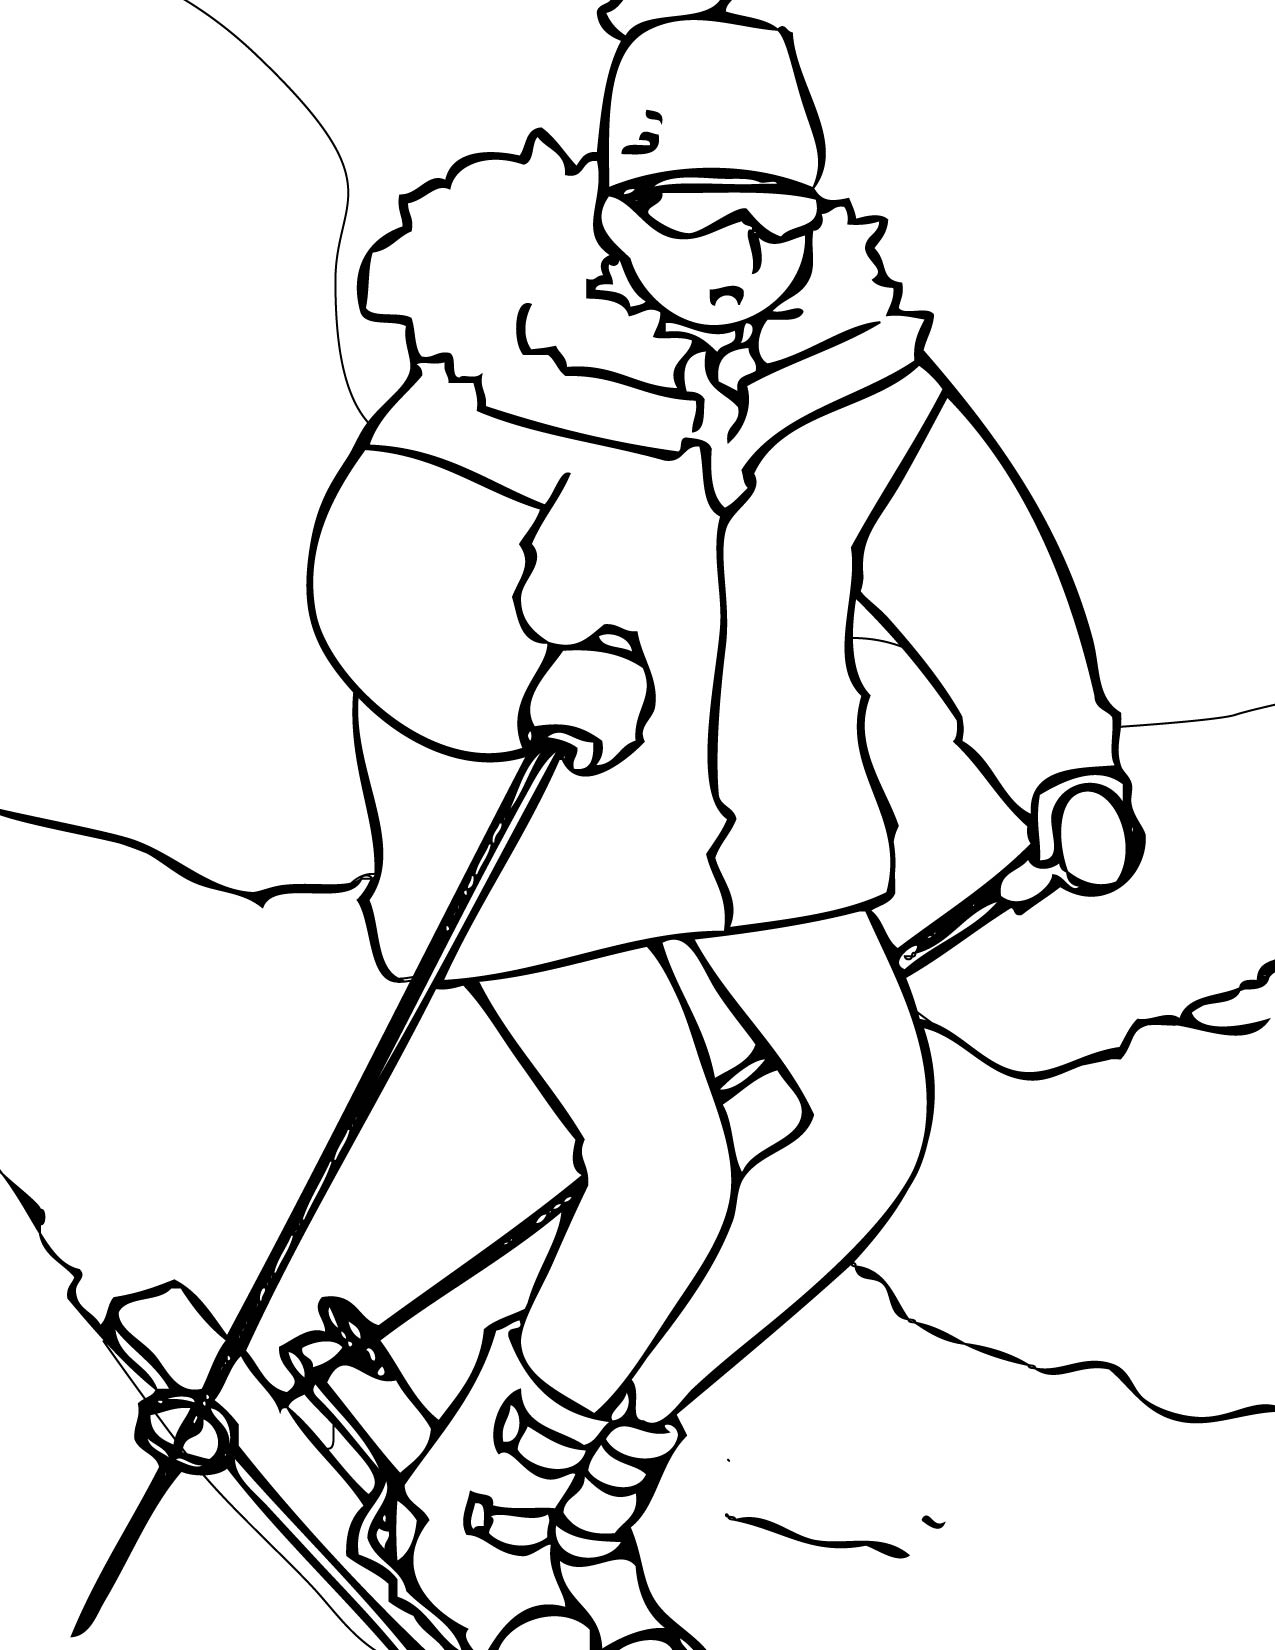 Winter pages to color - Winter Coloring Pages Winter Season